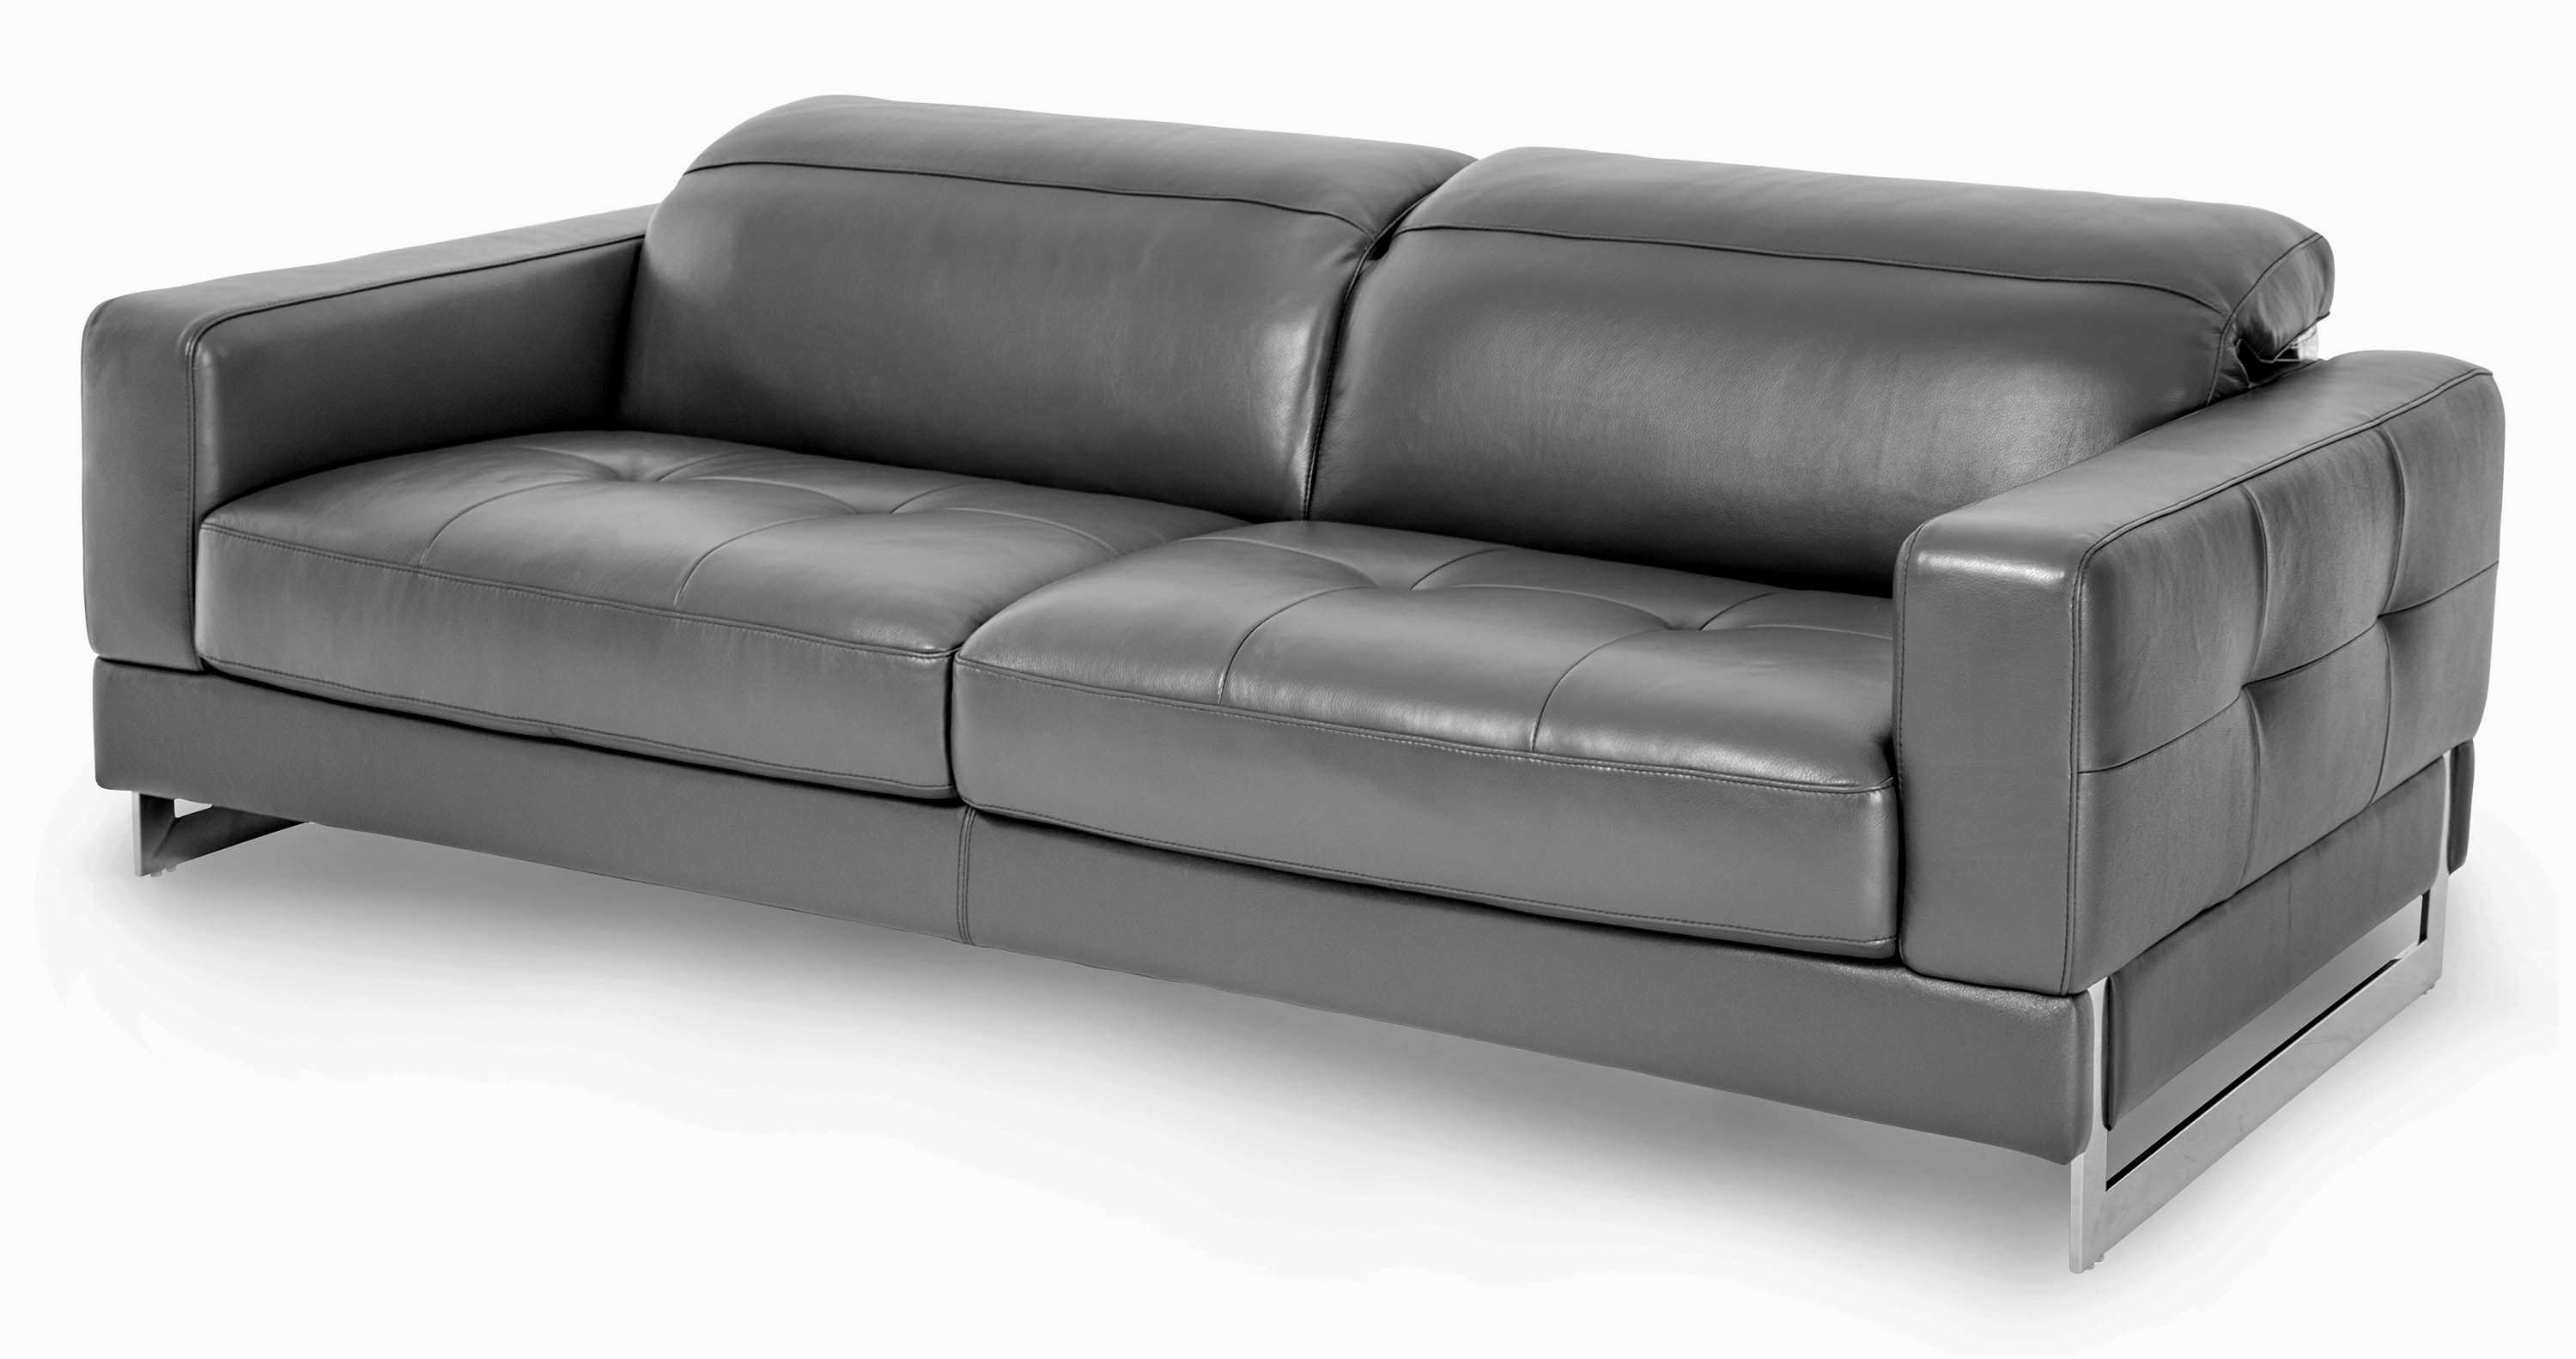 incredible leather sectional sofas pattern-Wonderful Leather Sectional sofas Architecture